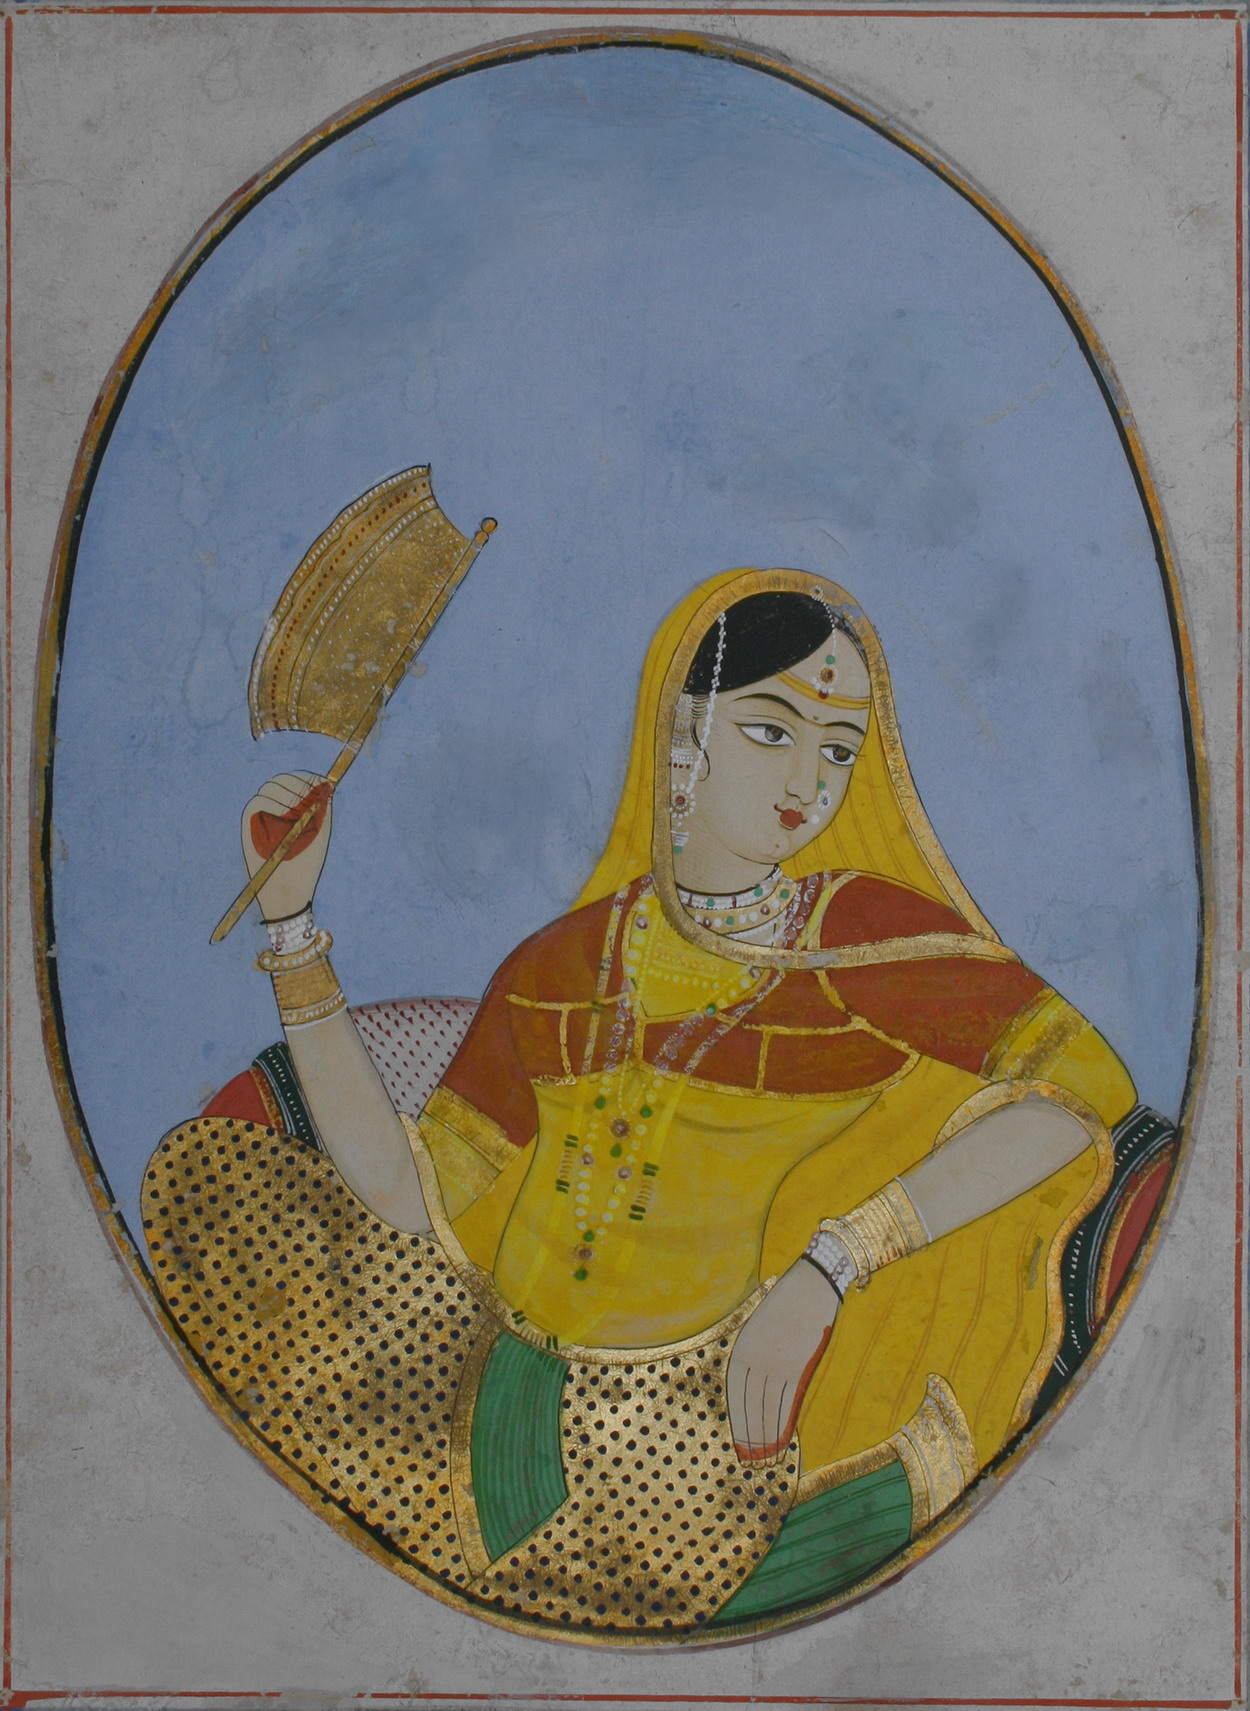 A courtesan with a Golden Fan - Watercolour Painting, Jaipur c1840-60